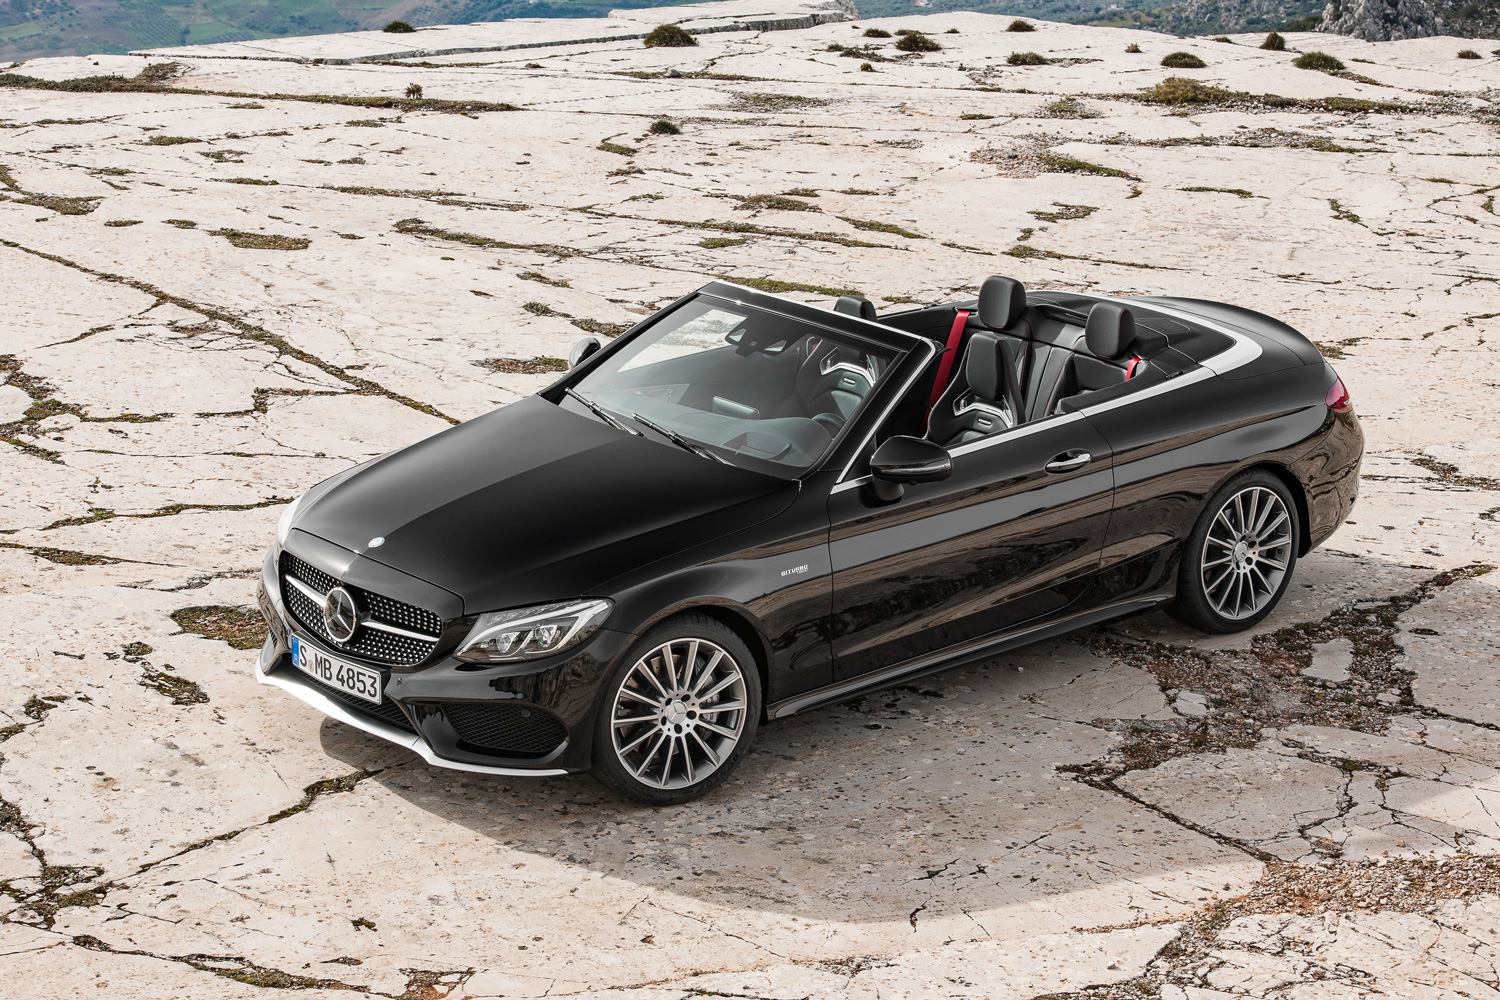 2017 Mercedes-AMG C43 Cabriolet overhead